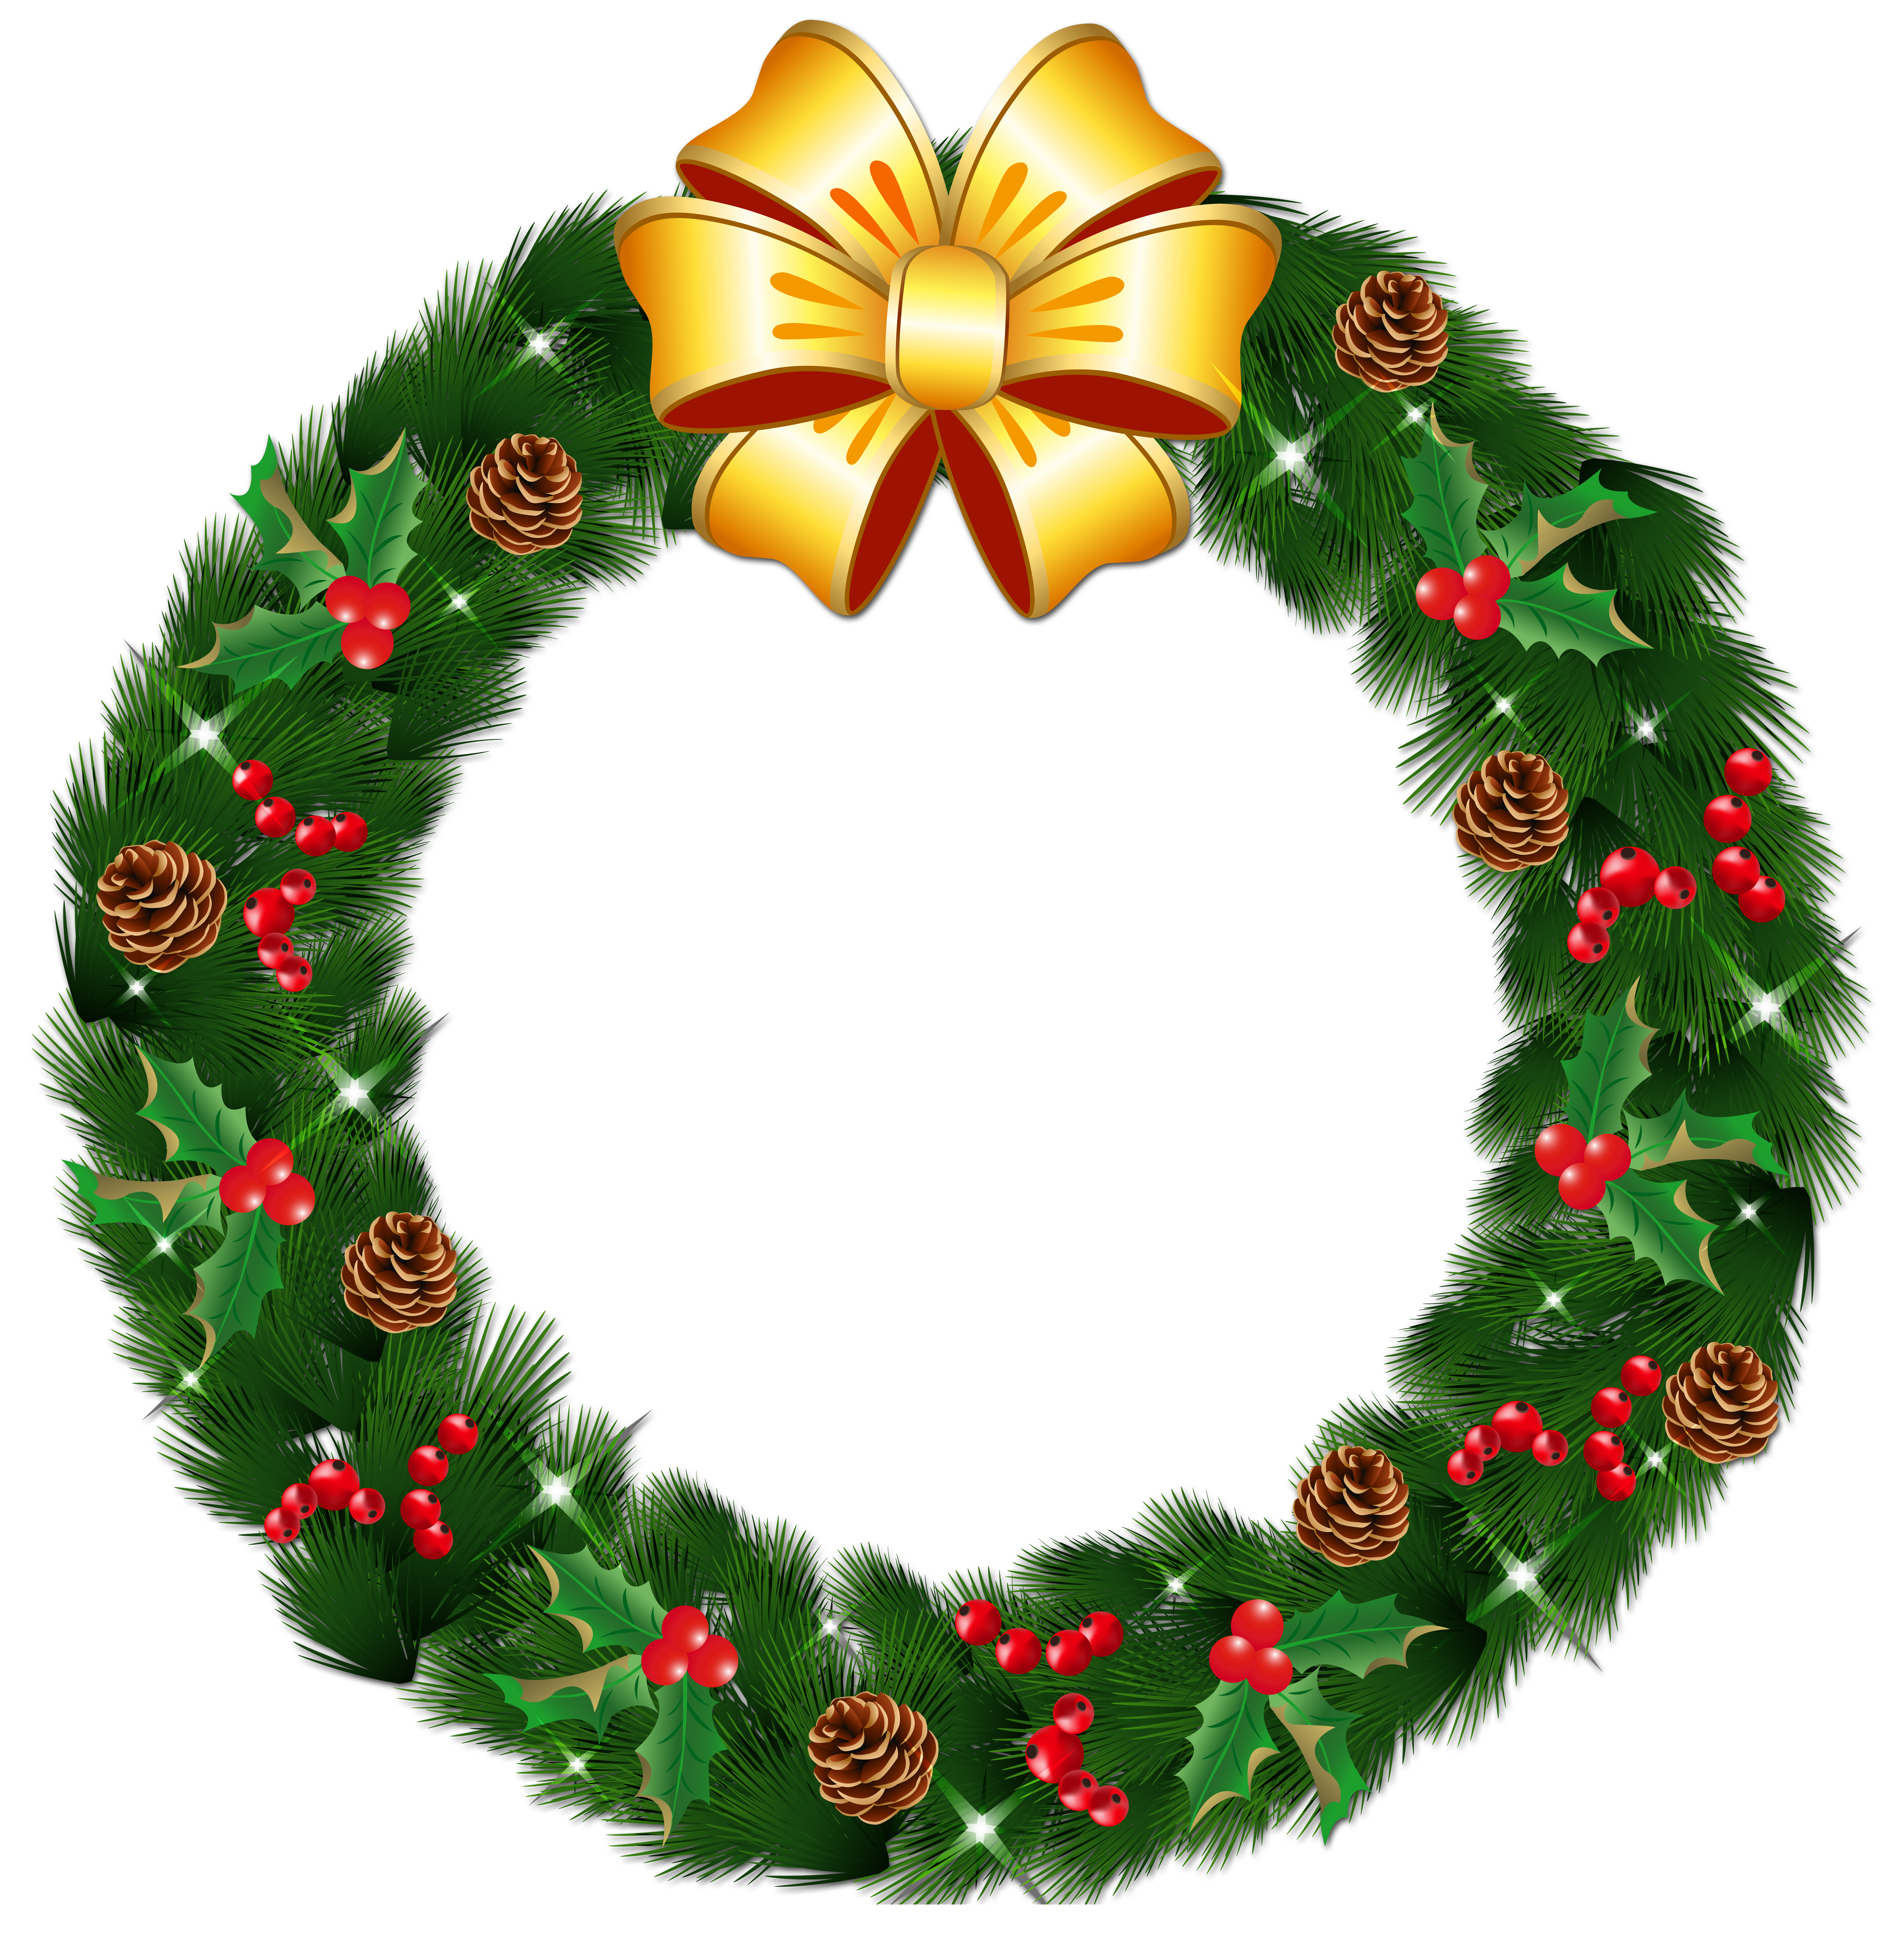 Free christmas wreath clipart clipart freeuse download Christmas Wreath Clipart at GetDrawings.com | Free for personal use ... clipart freeuse download